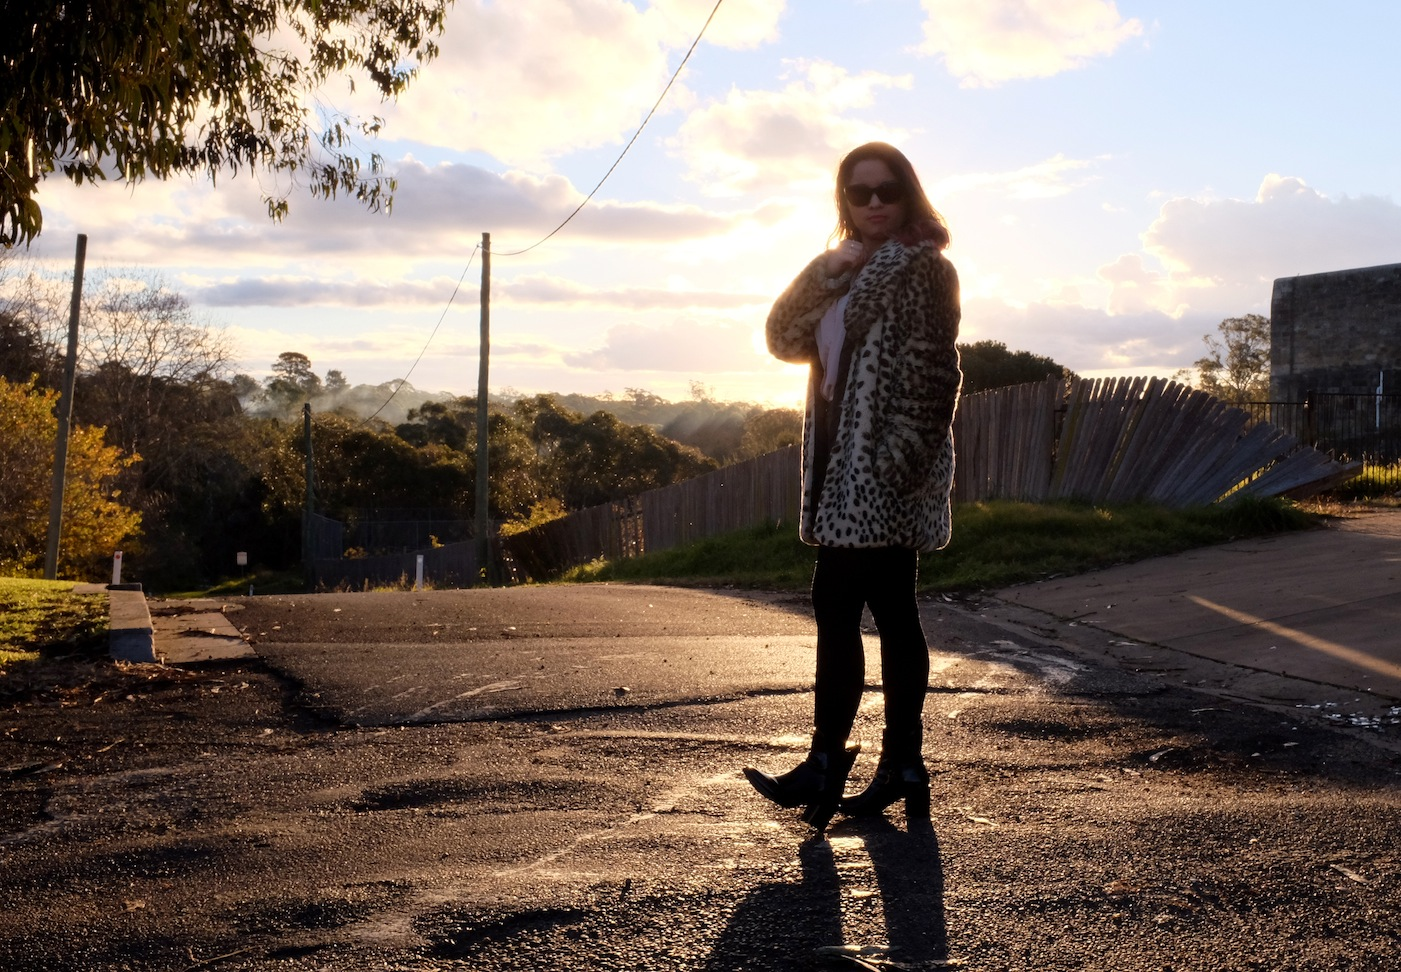 Berrima, NSW, Sydney, Winter Solstice, Southern Highlands, Photography, travel, fashion, leopard, vintage, sunset, blogger, style, ootd, leather, Portmans, Sportsgirl, ZU shoes, ZU, pink hair, hair makeup, Prada, sunglasses, boots, style, shorts, tights, stockings, winter, winter fashion